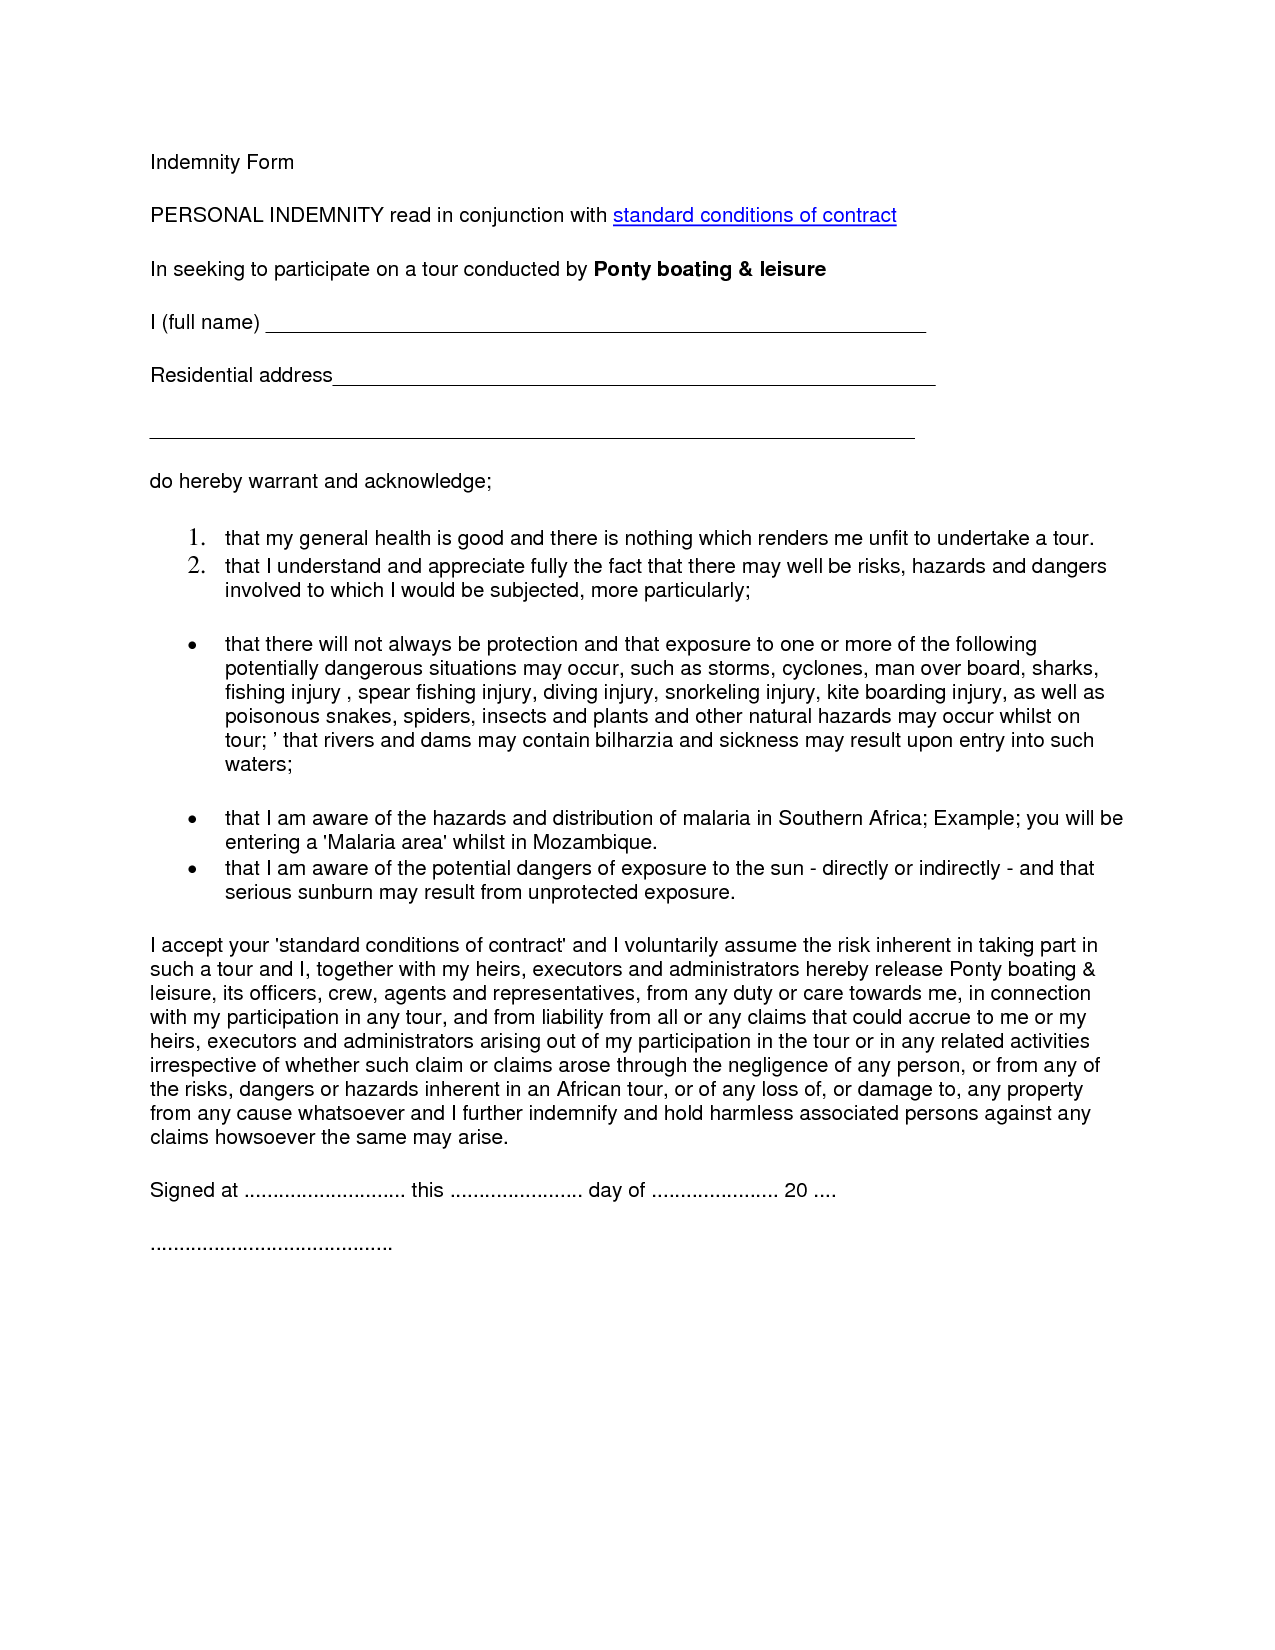 Indemnity Form PERSONAL INDEMNITY read in conjunction with by – Sample of Indemnity Form